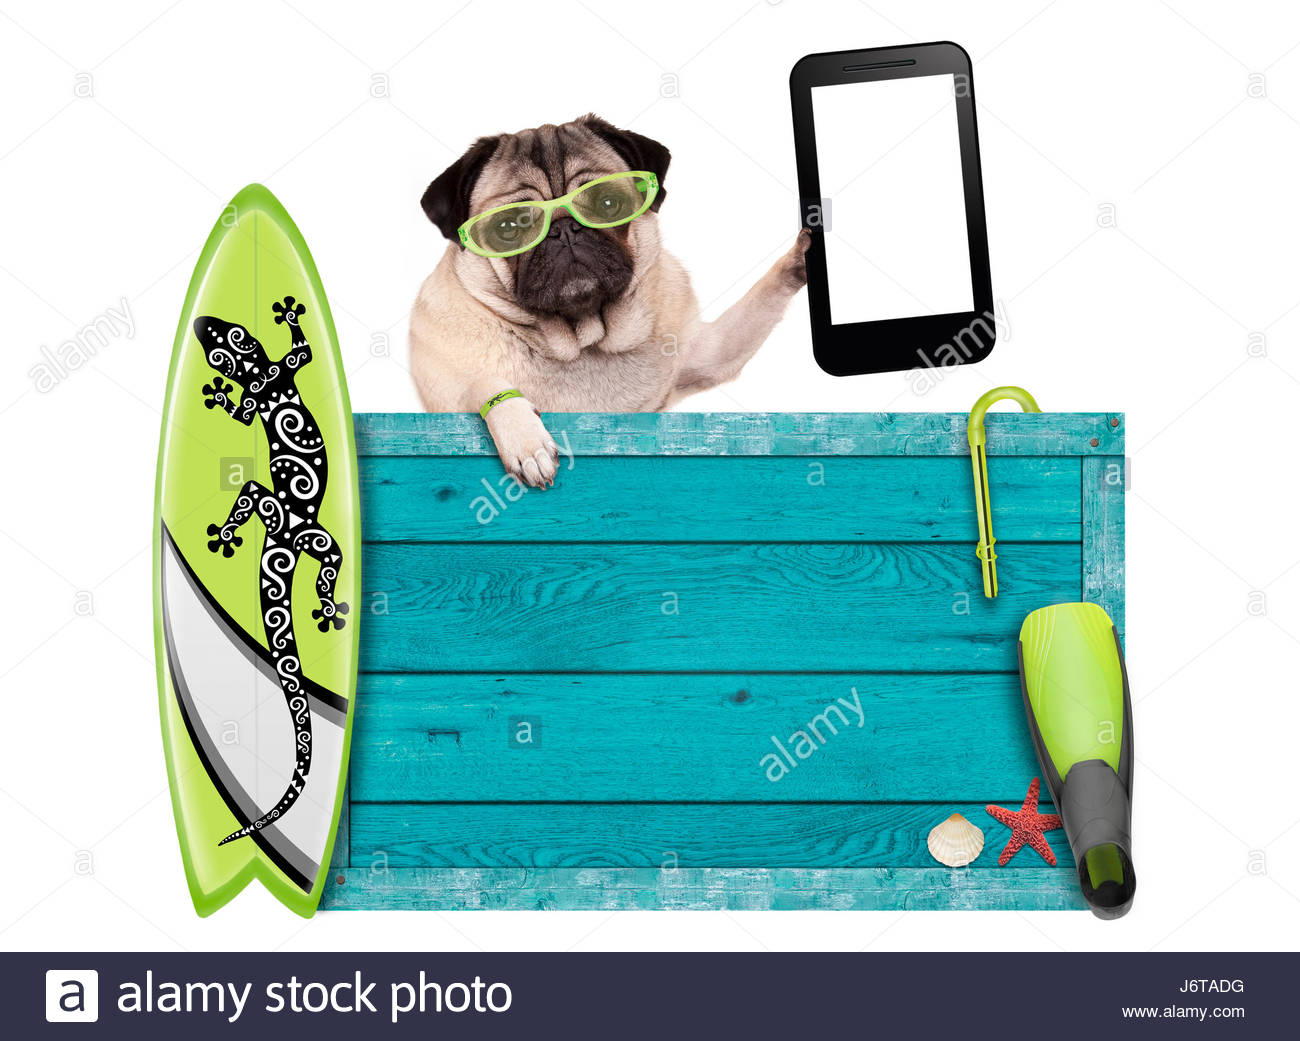 1300x1041 Pug Dog On Vacation With Blue Vintage Wooden Beach Sign, Surfboard